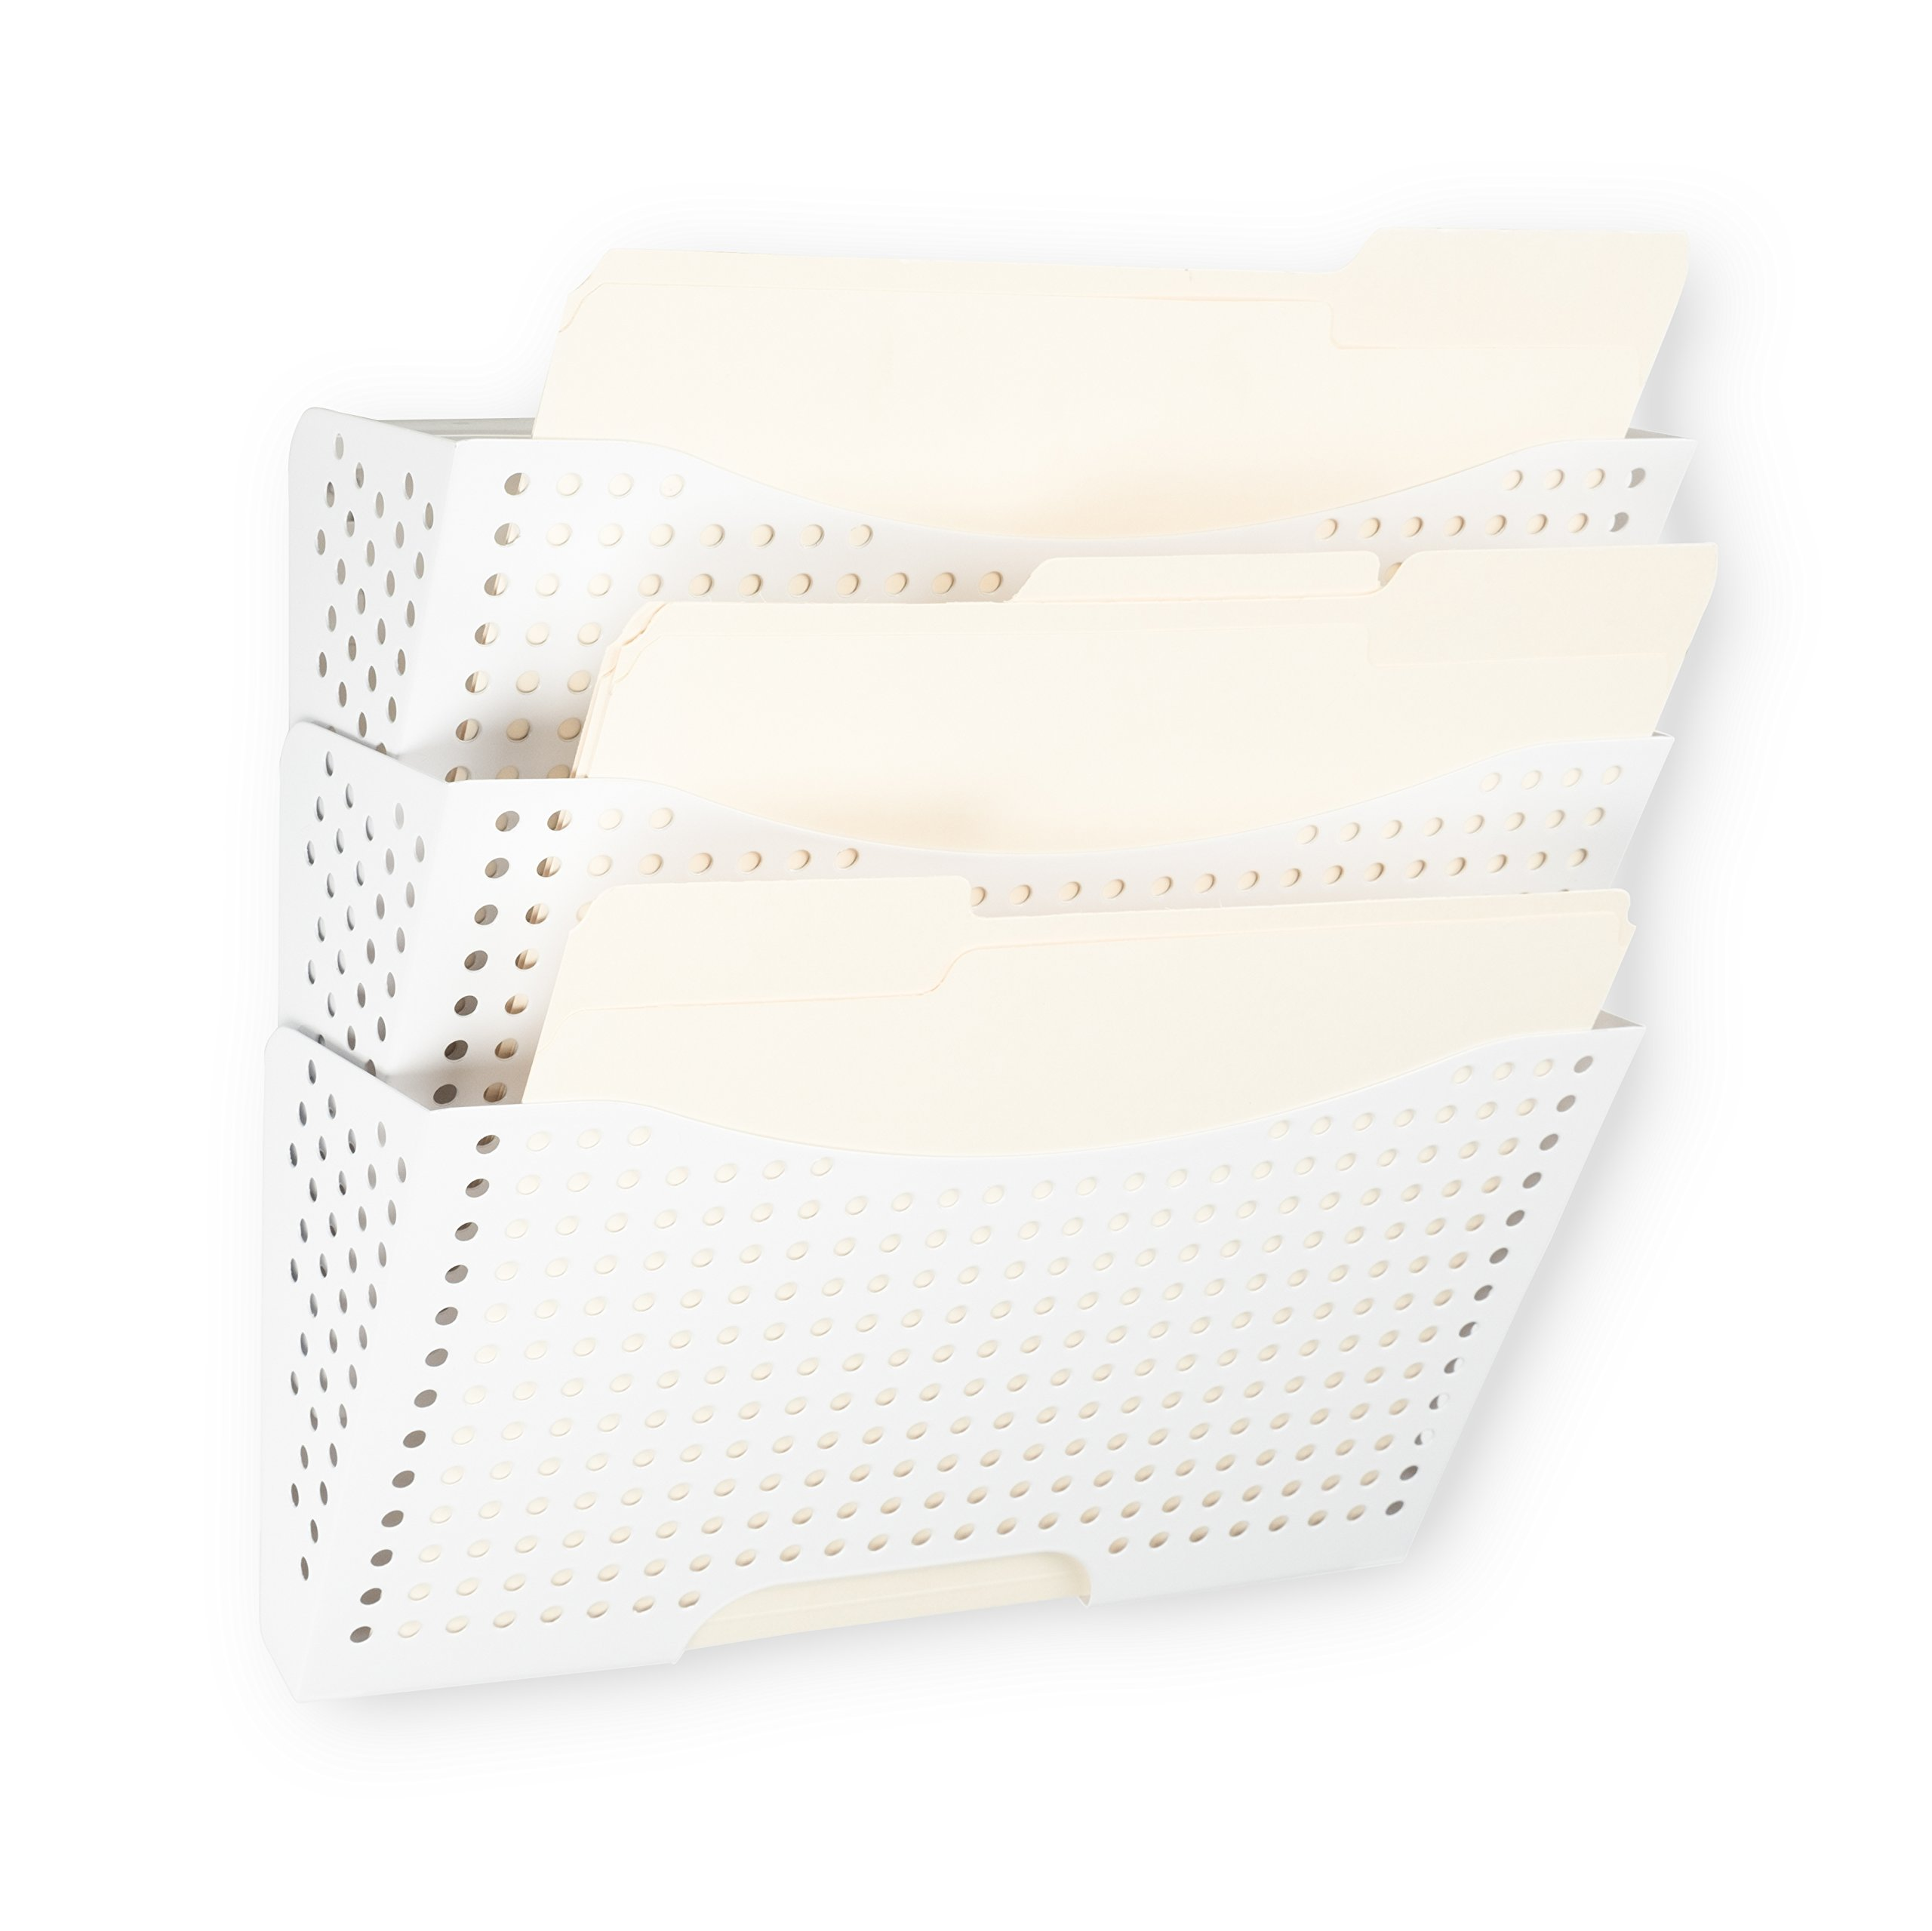 Wallniture Lisbon Wall Mount File Holder Organizer Metal Modern Modular Design Metal Storage Level Folders White Steel Durable Construction (3 Pack) by Wallniture (Image #2)